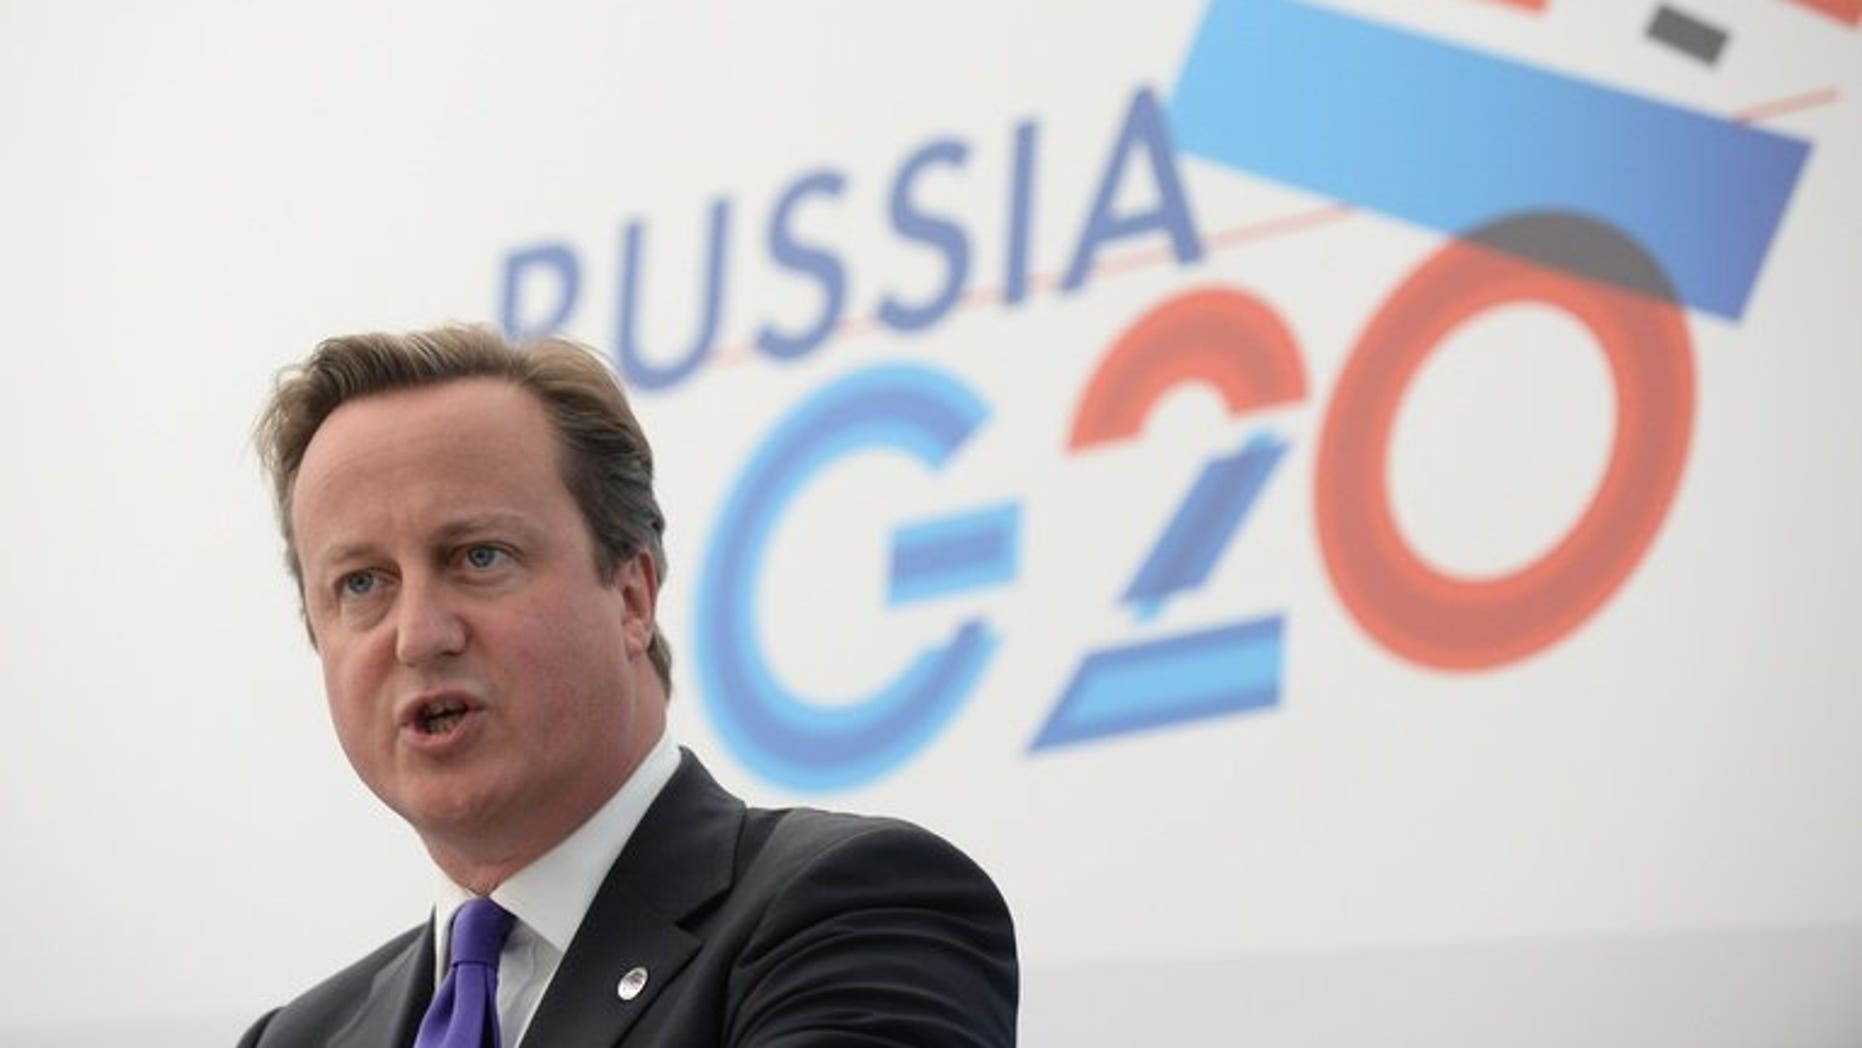 """David Cameron gives a press conference at the G20 summit on September 6, 2013 in Saint Petersburg. The Prime Minister strongly defended Britain's achievements after a Russian official reportedly dismissed it as a """"small island"""" with no international influence."""